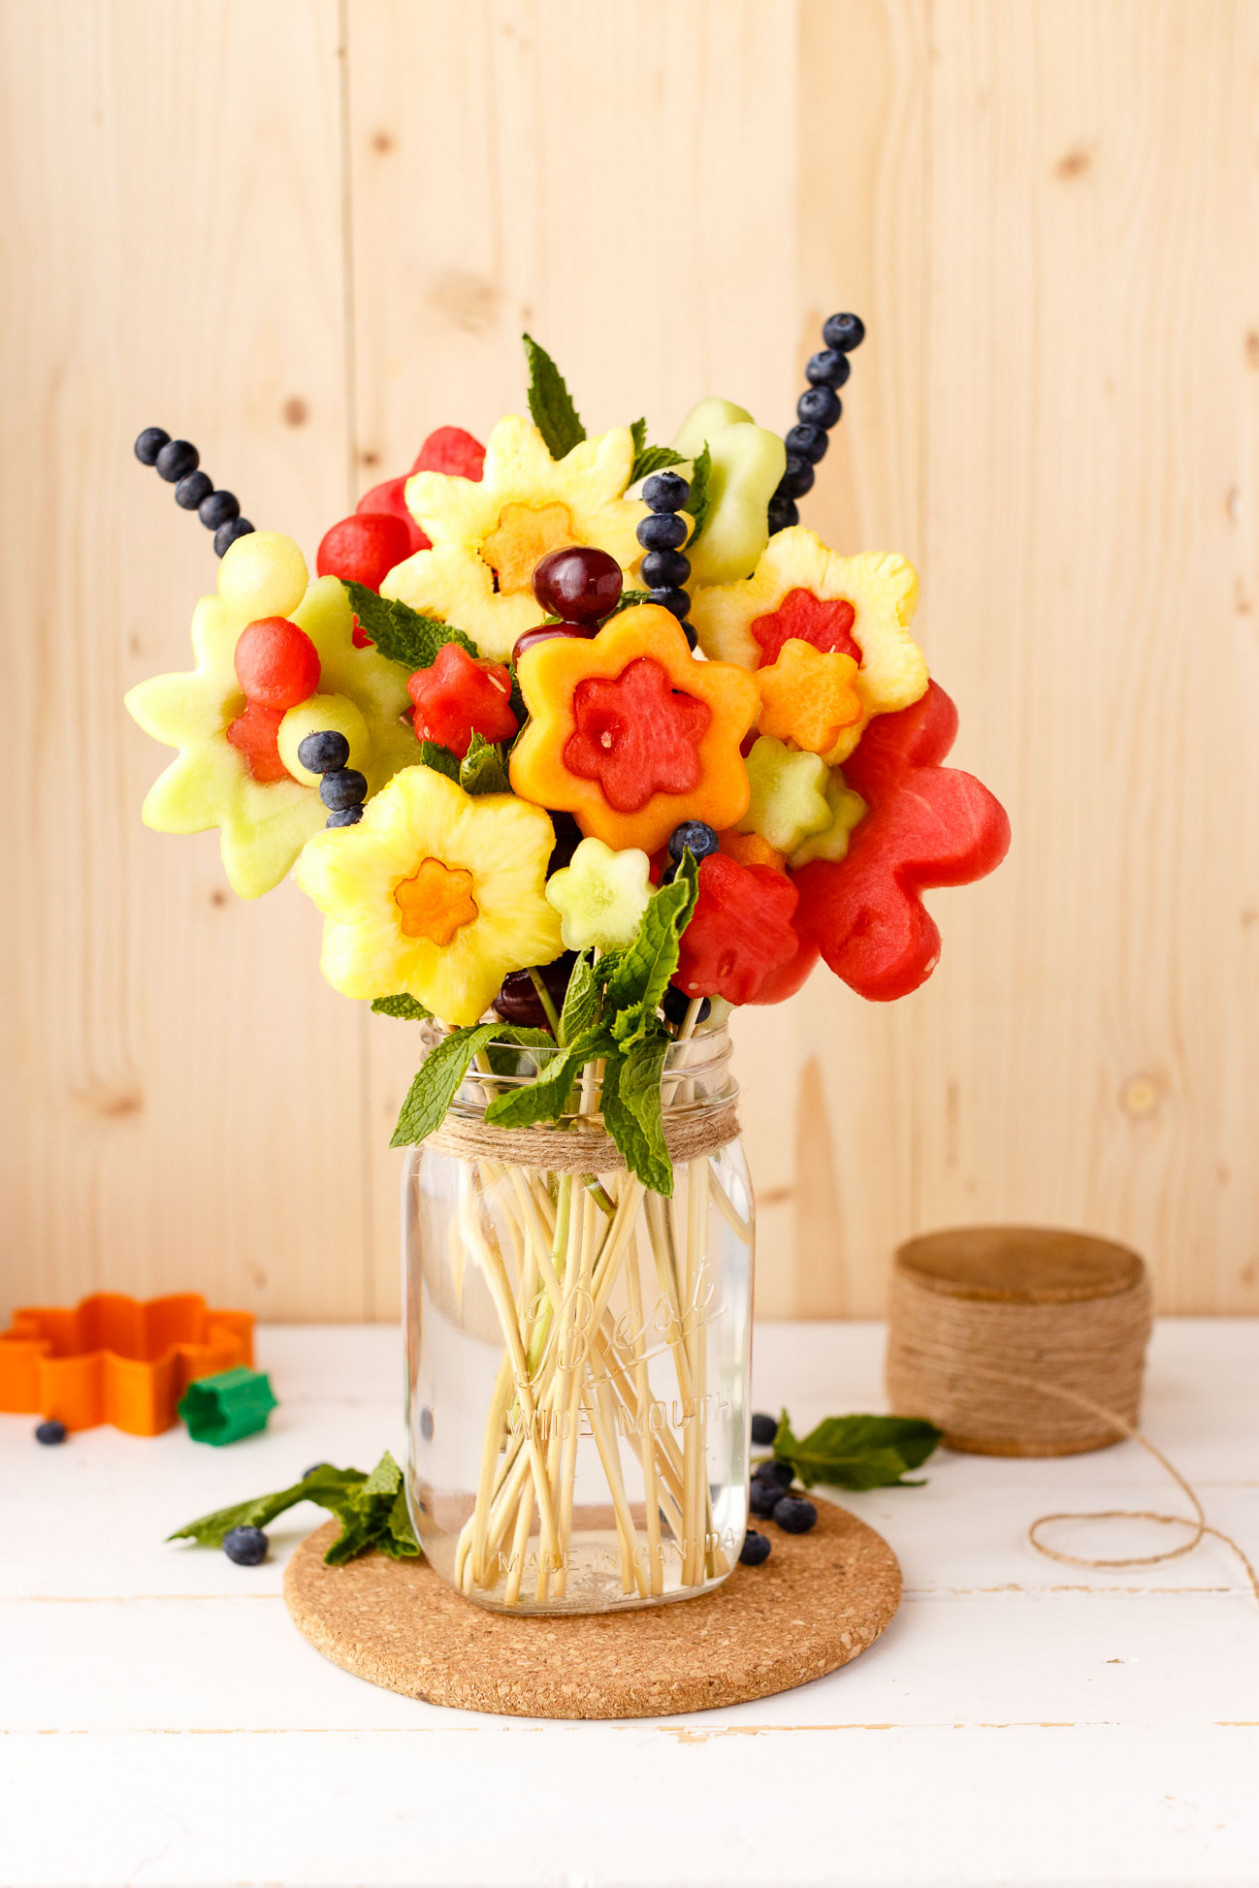 Healthy Fruit Bouquets For Nature's Path Organic - Recipes Delicious Healthy Breakfast